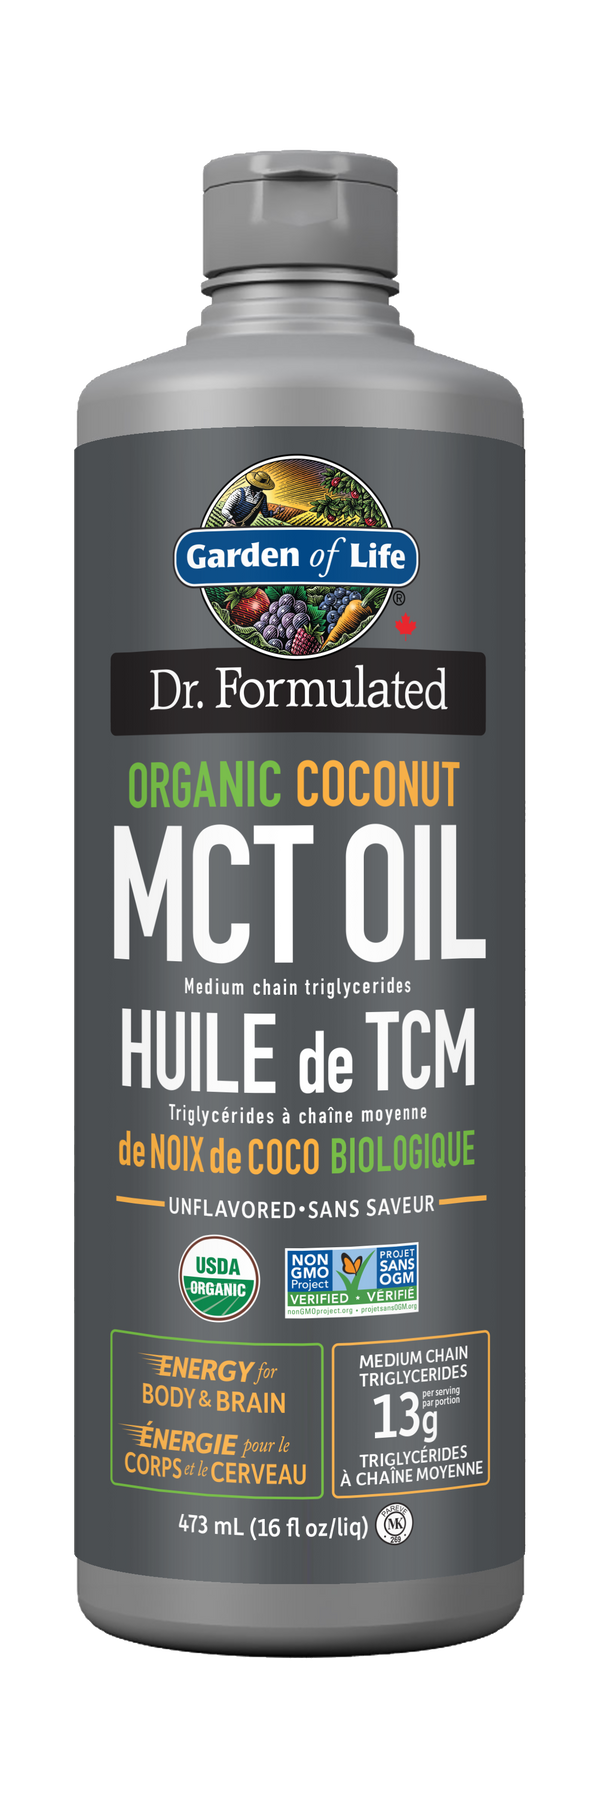 Dr. Formulated 100% Organic MCT Oil